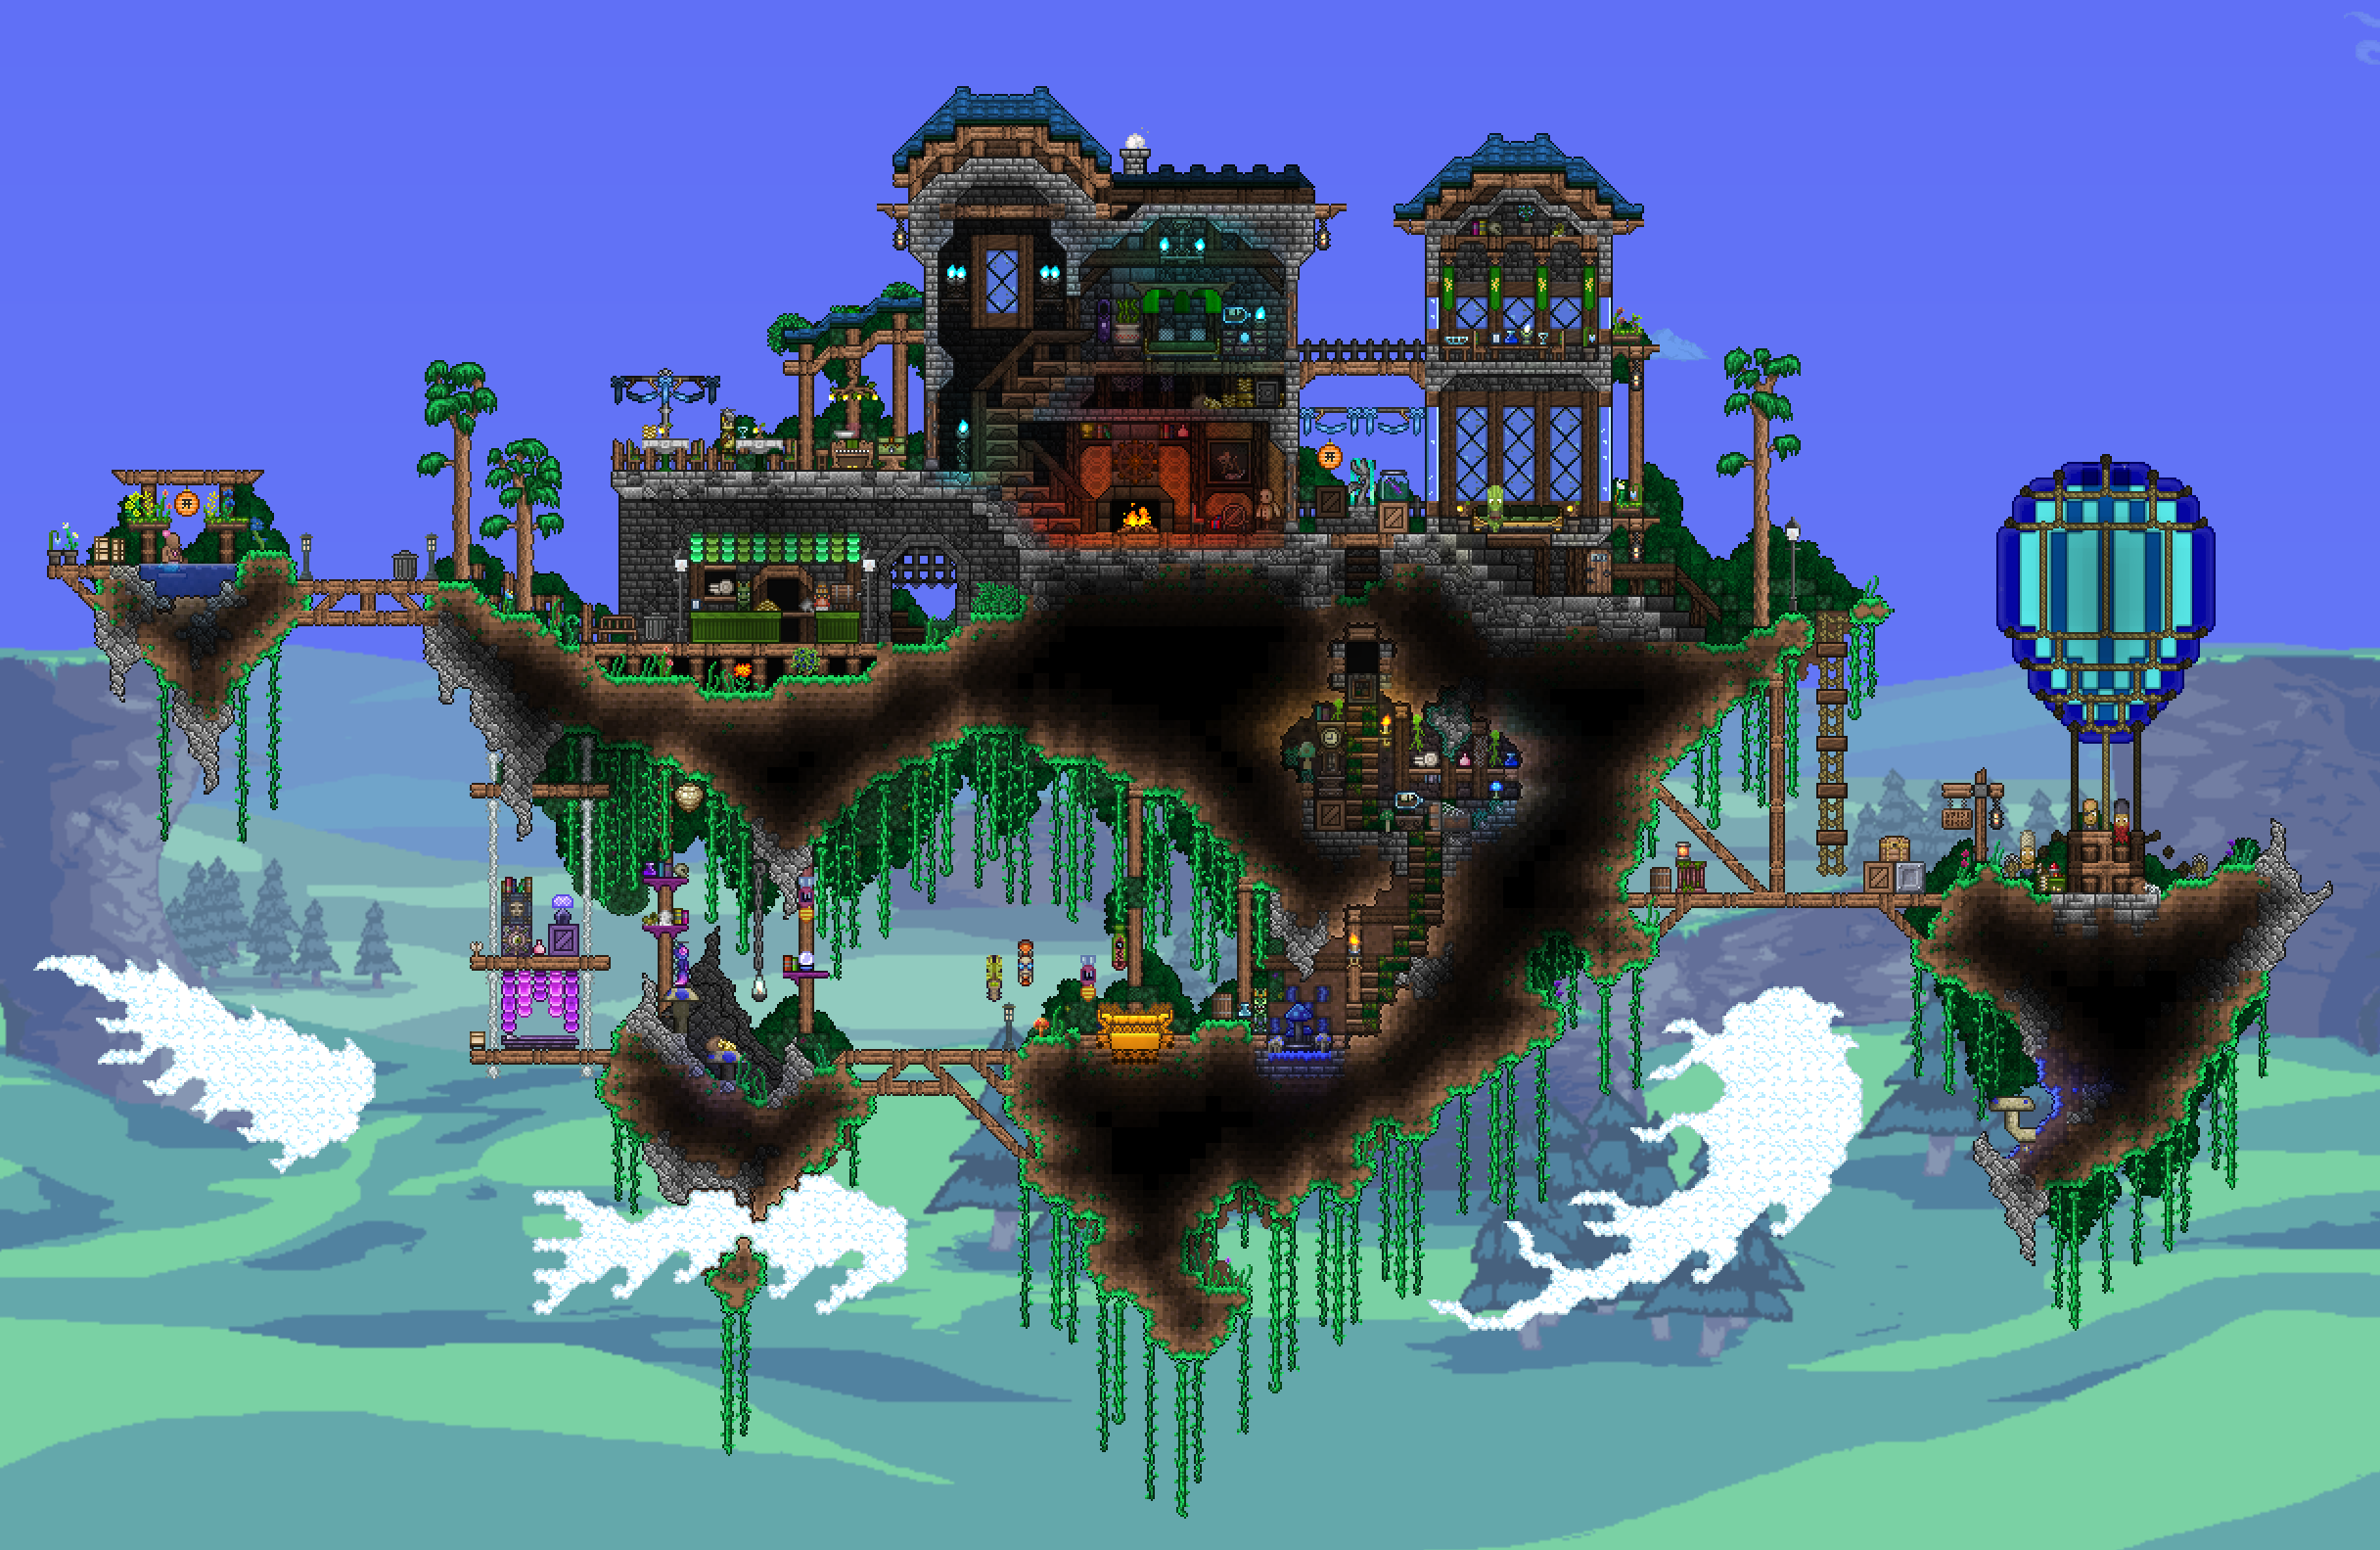 Floating Manor Terraria Looks Like It Was Heavily Inspired By